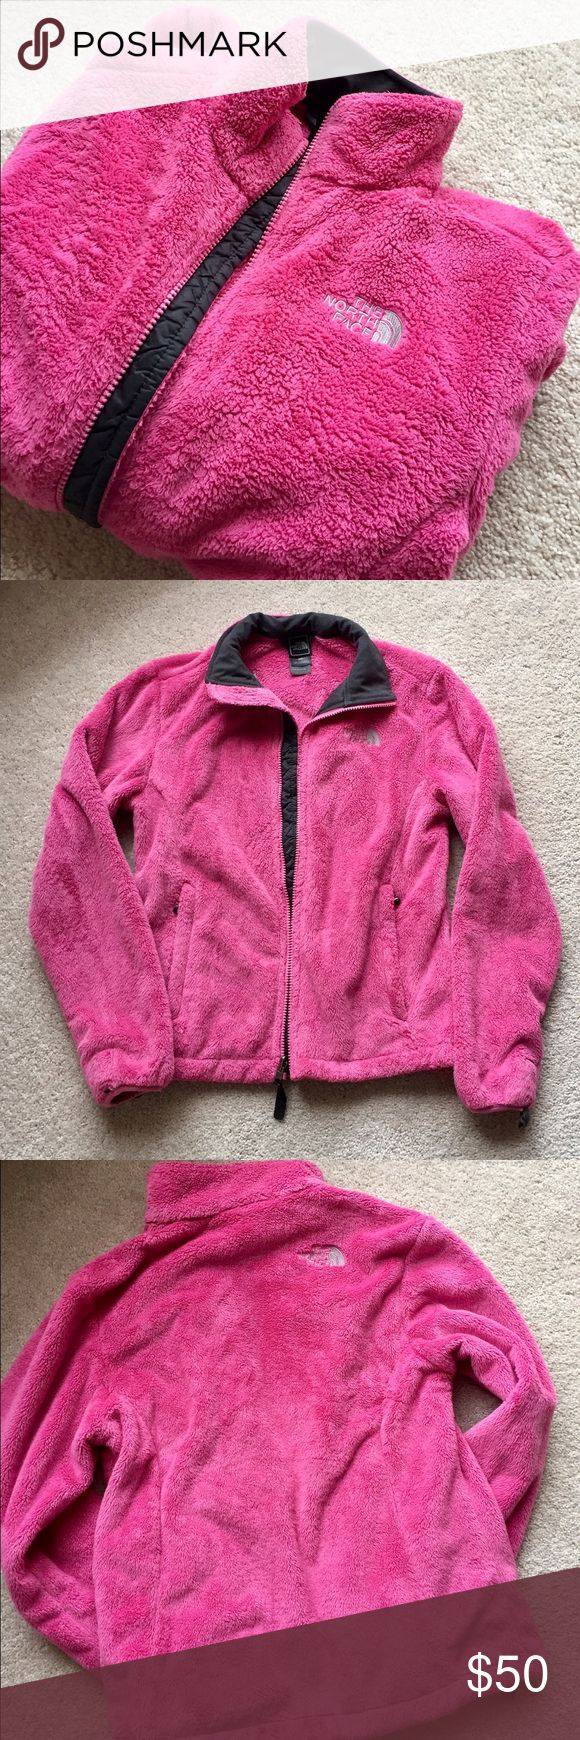 North Face pink zip up jacket Pink North Face fleece jacket, size small. In very good used condition. Full zip up, zipper pockets and bungees at waist to tighten. No stains, tears, holes etc. Smoke free, pet free home. The North Face Jackets & Coats